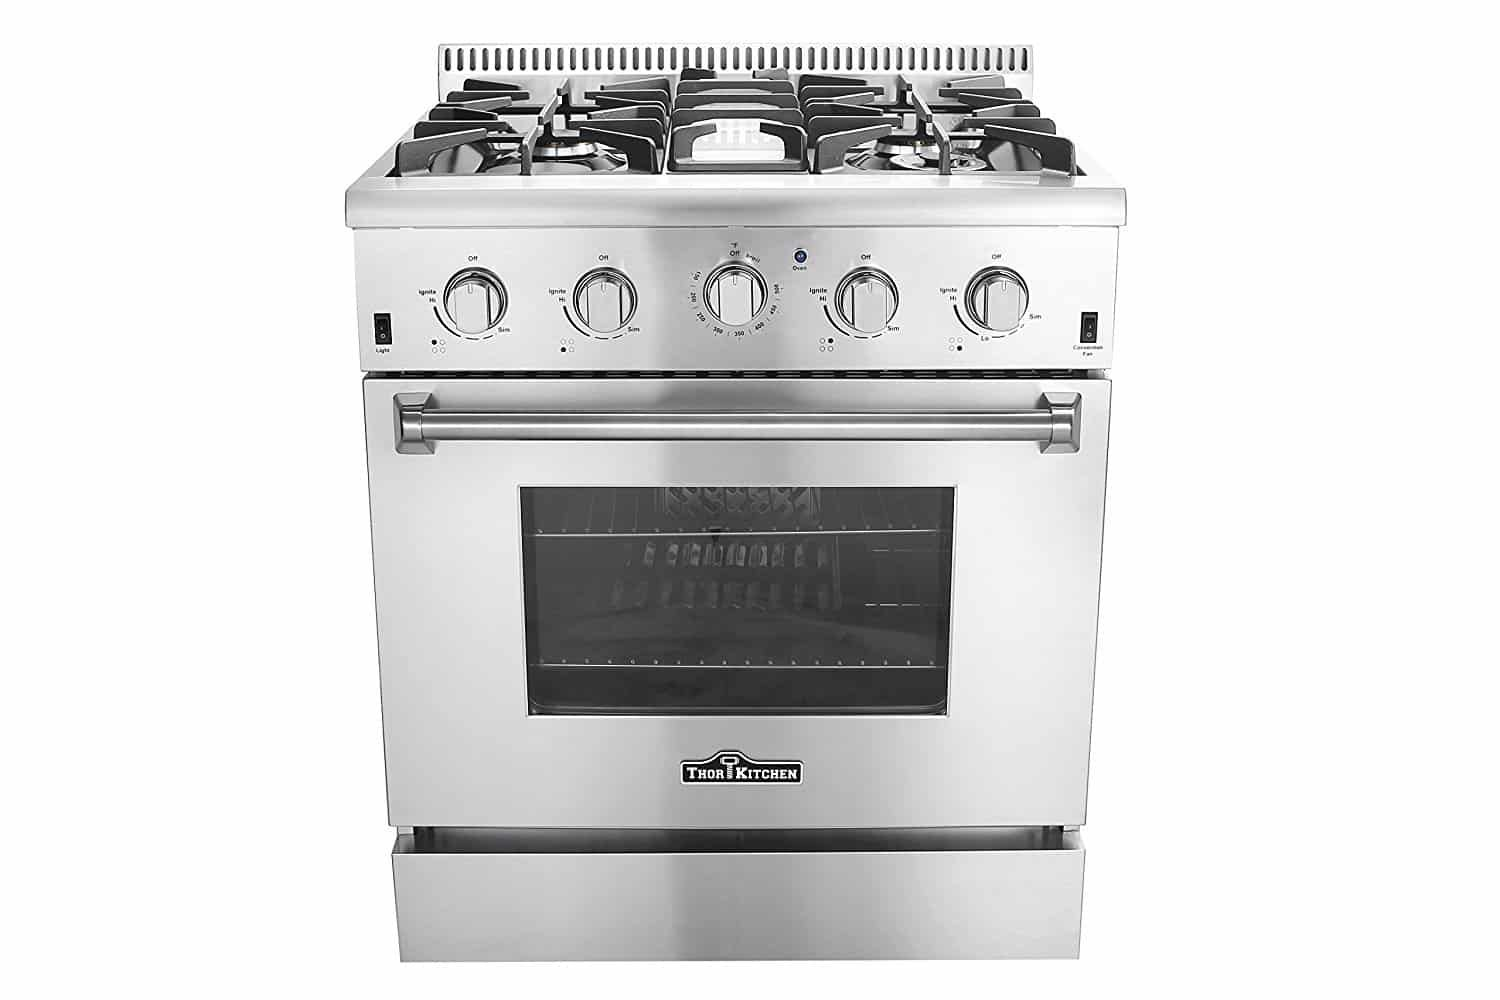 Top 10 Best Gas Ranges In 2020 Reviews Best Gas Stove Gas Stoves Kitchen Kitchen Range